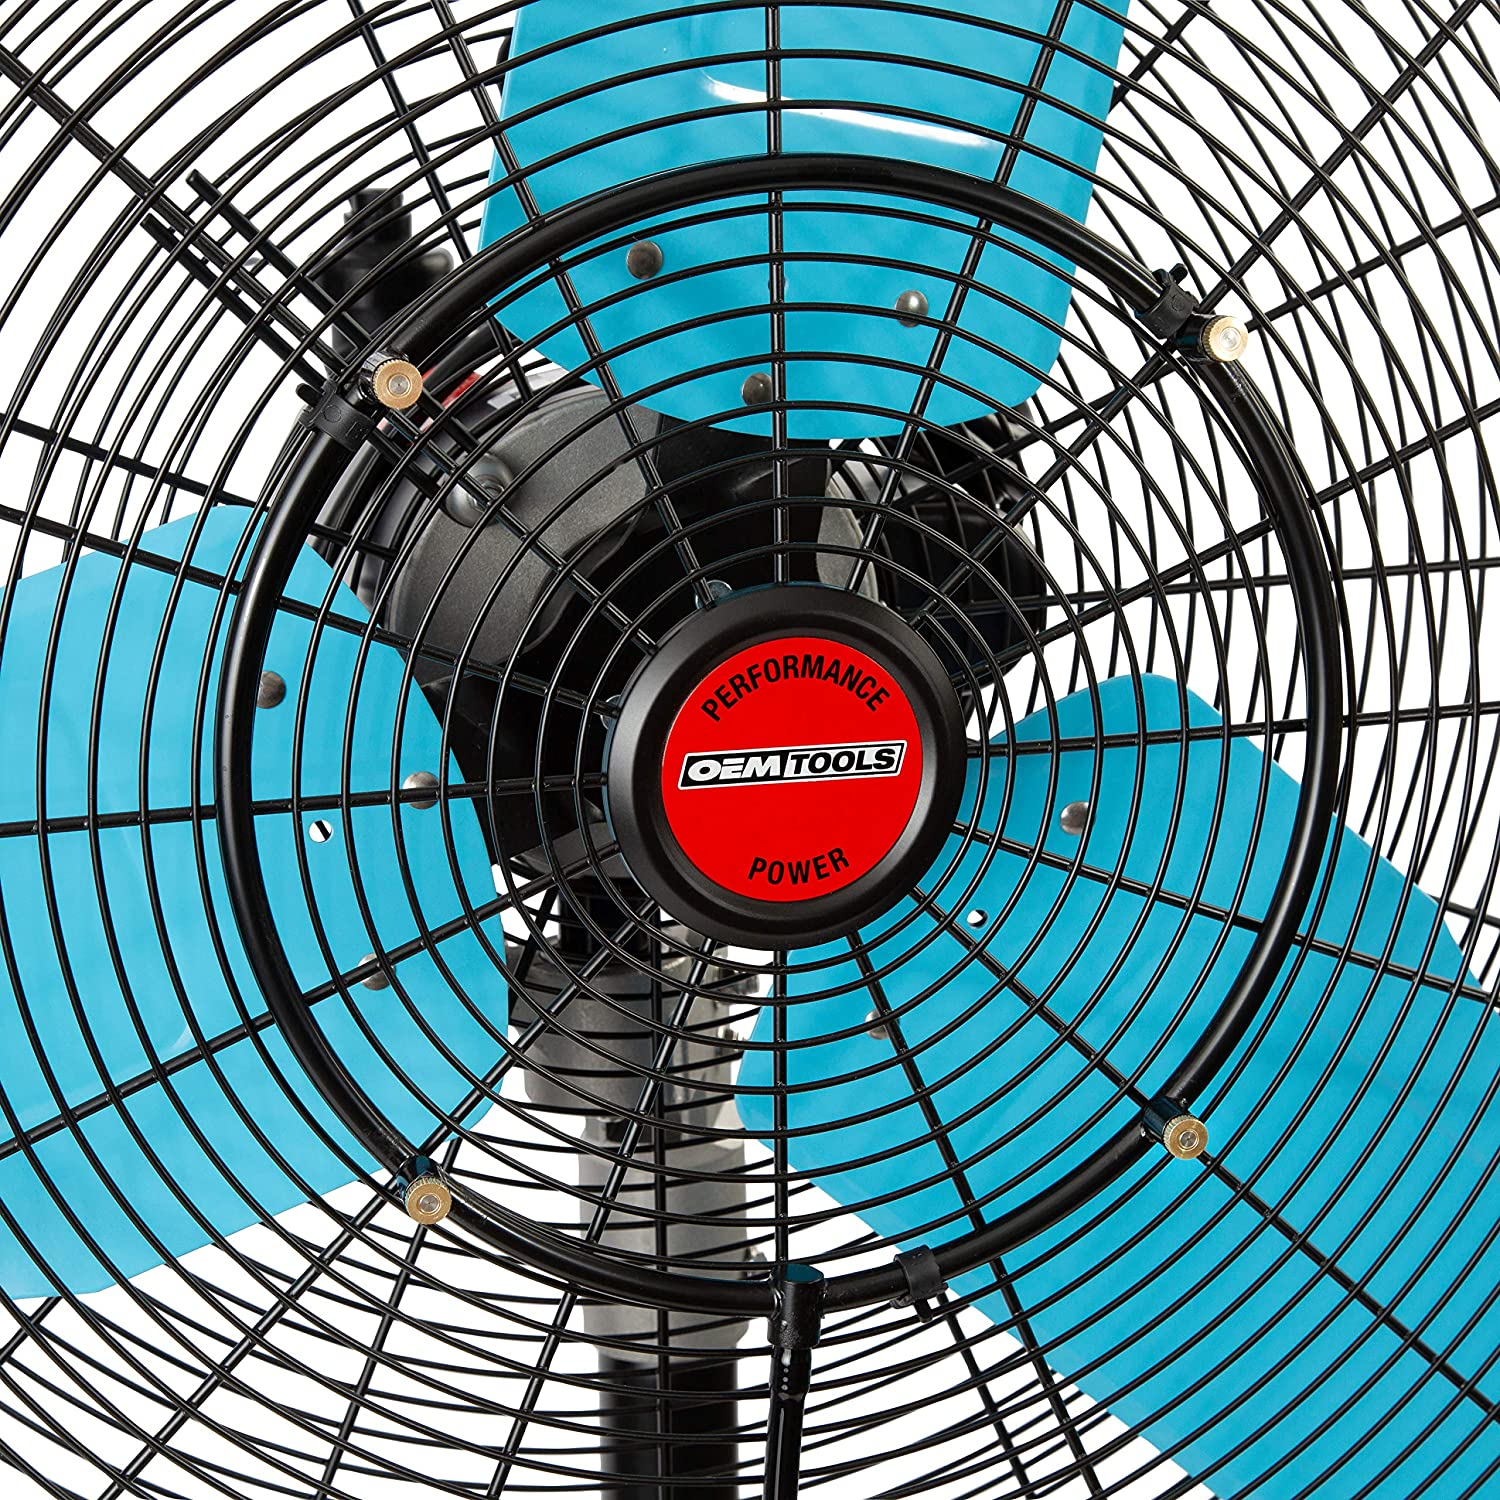 Outdoor Heating Misting Fans OEMTOOLS 23980 24 Misting Wall-Mount ...